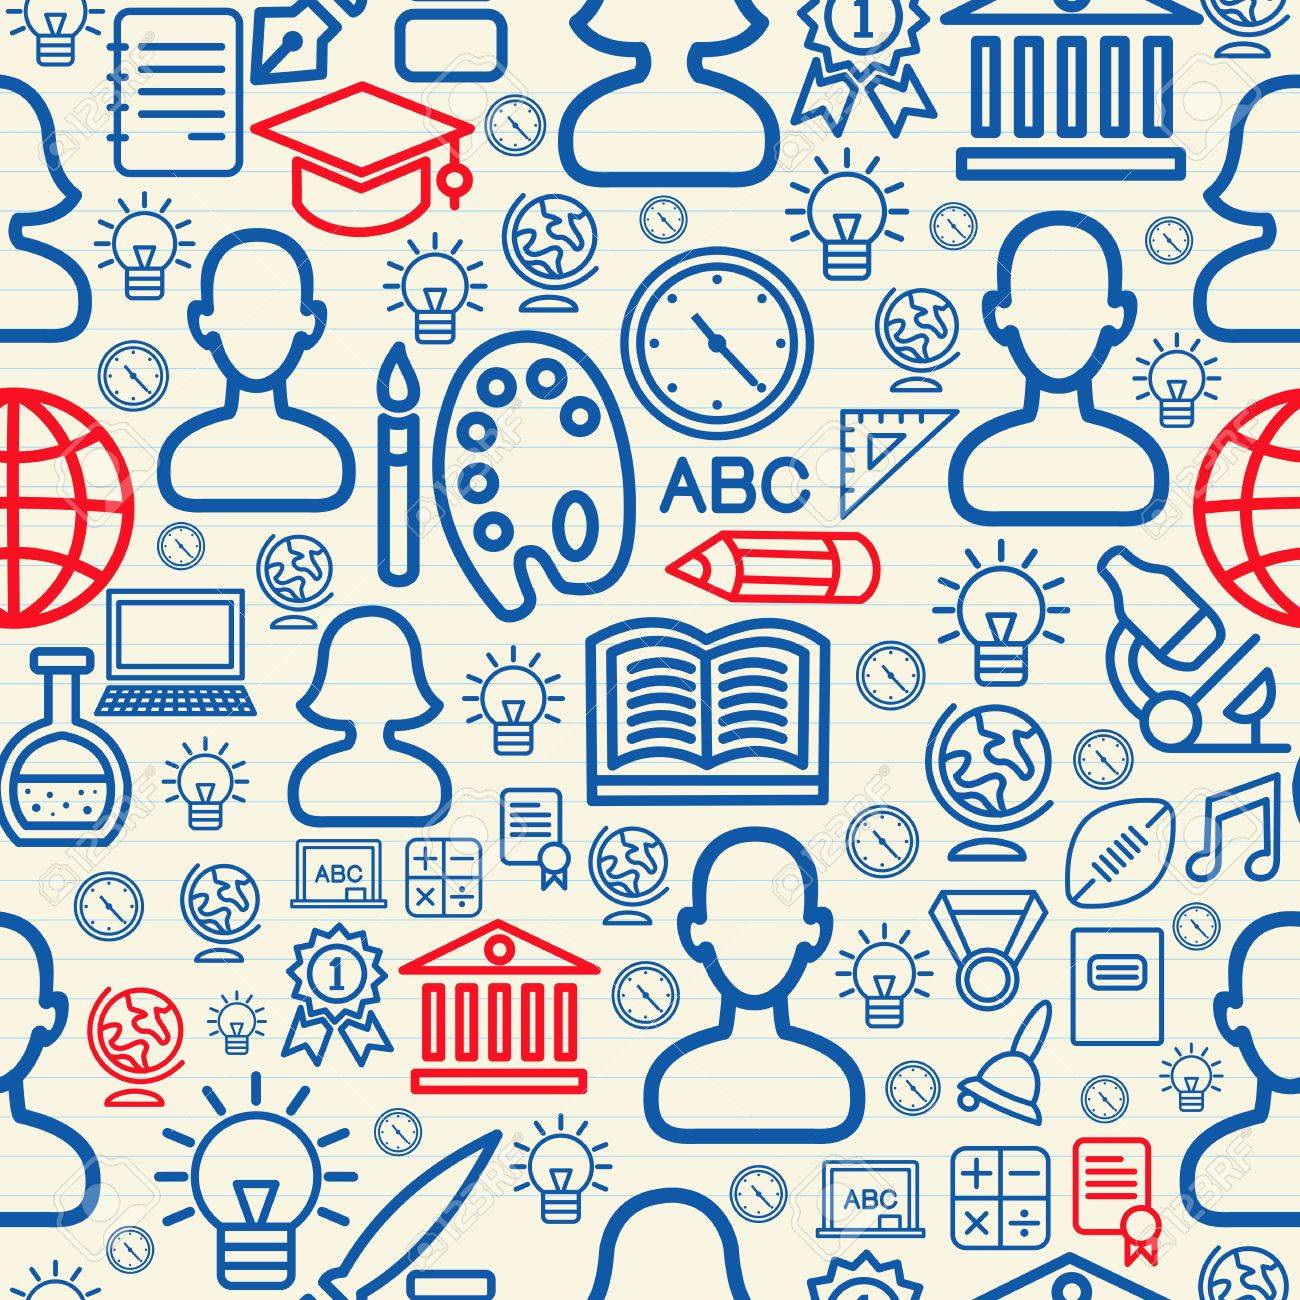 Education seamless pattern background with school icons and symbols